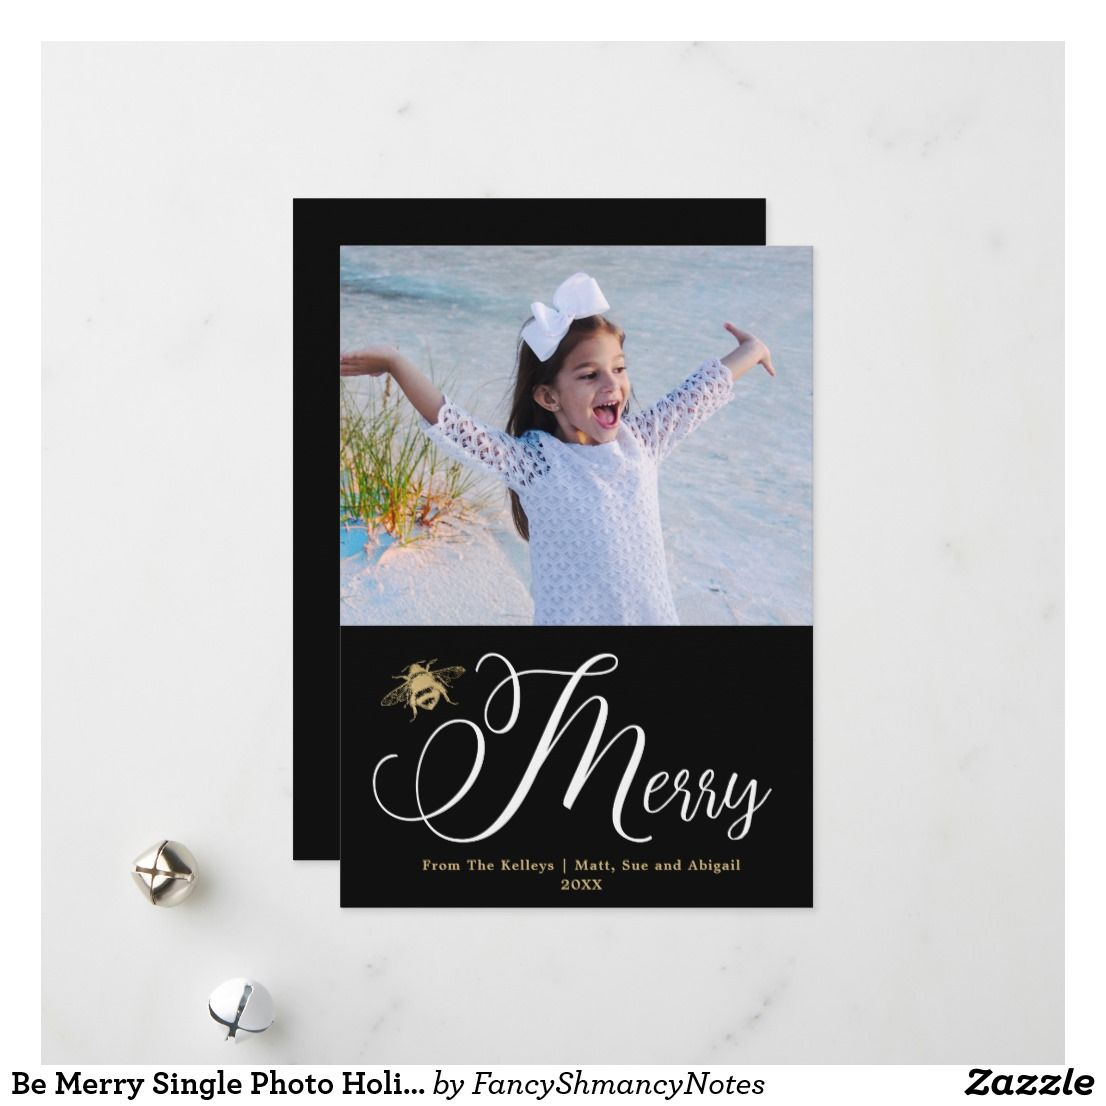 Be merry single photo holiday card black and gold